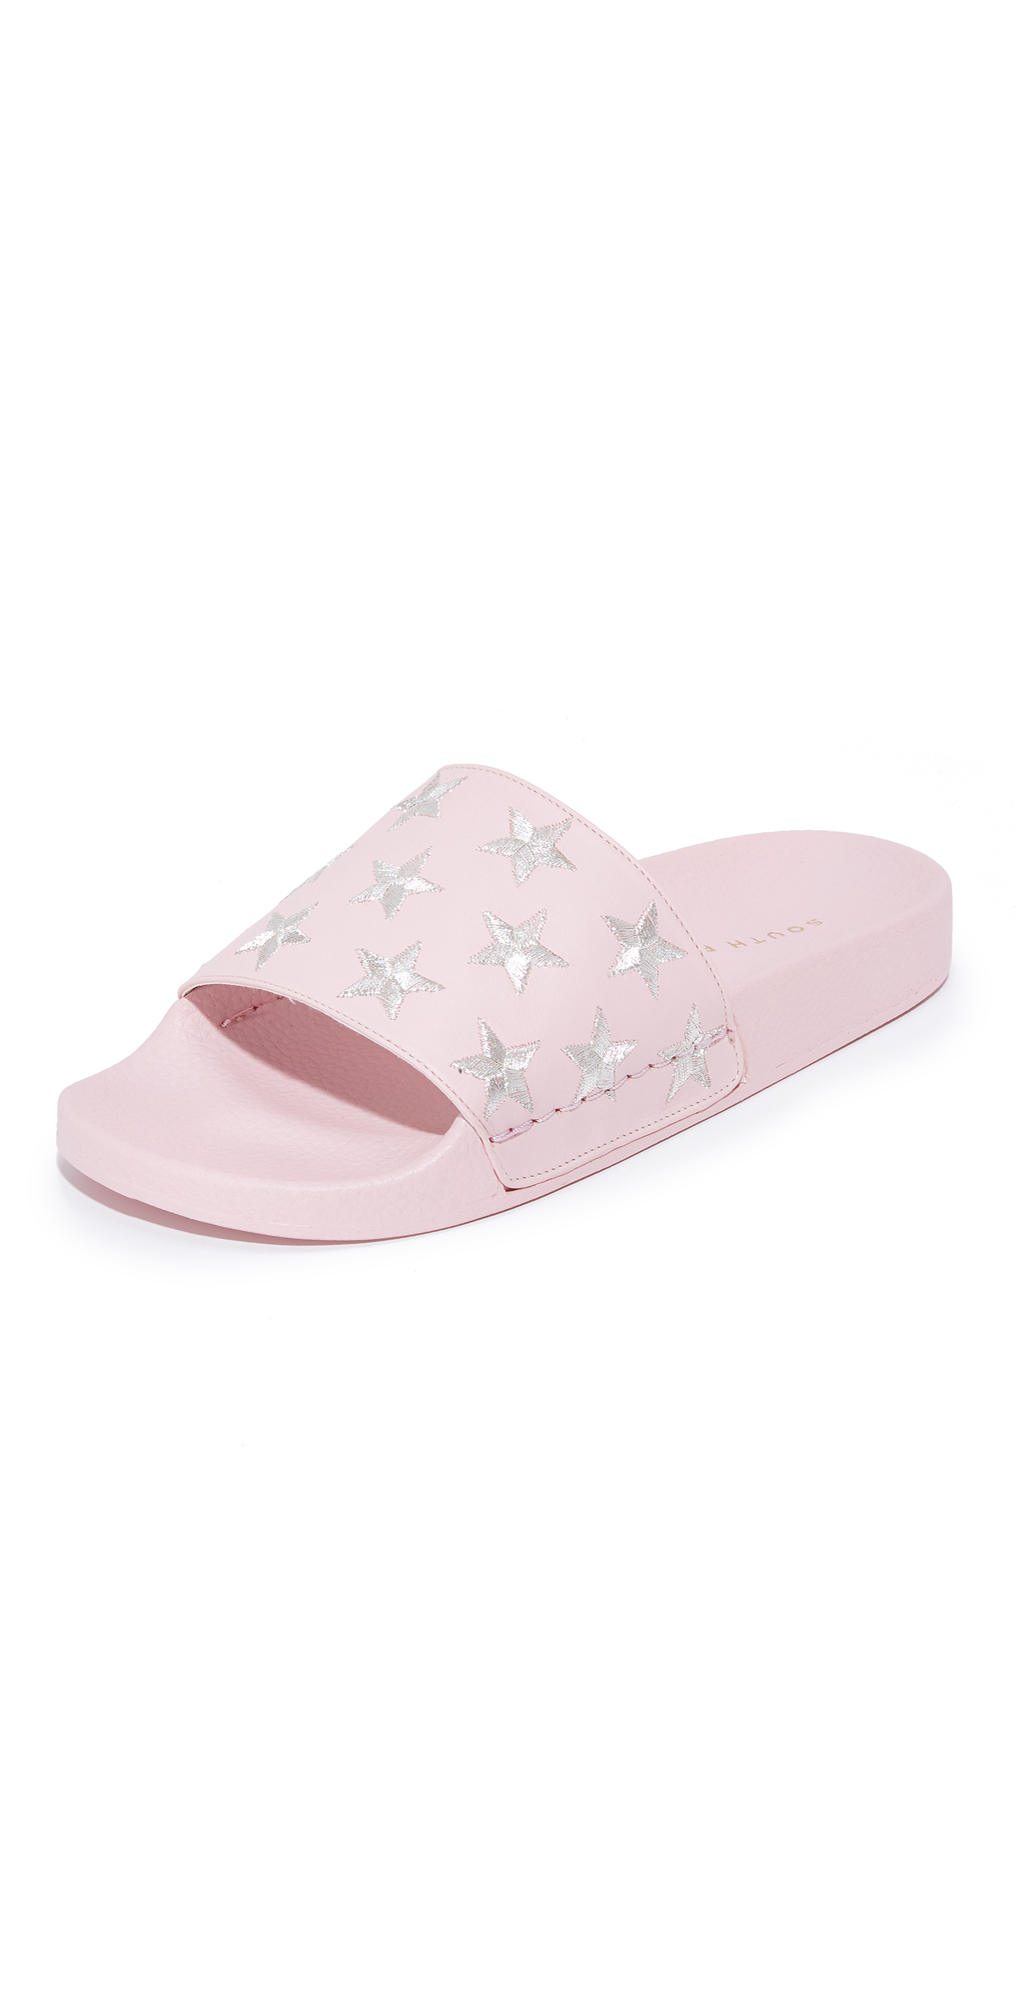 Stars Pool Slides ONE by South Parade Footwear